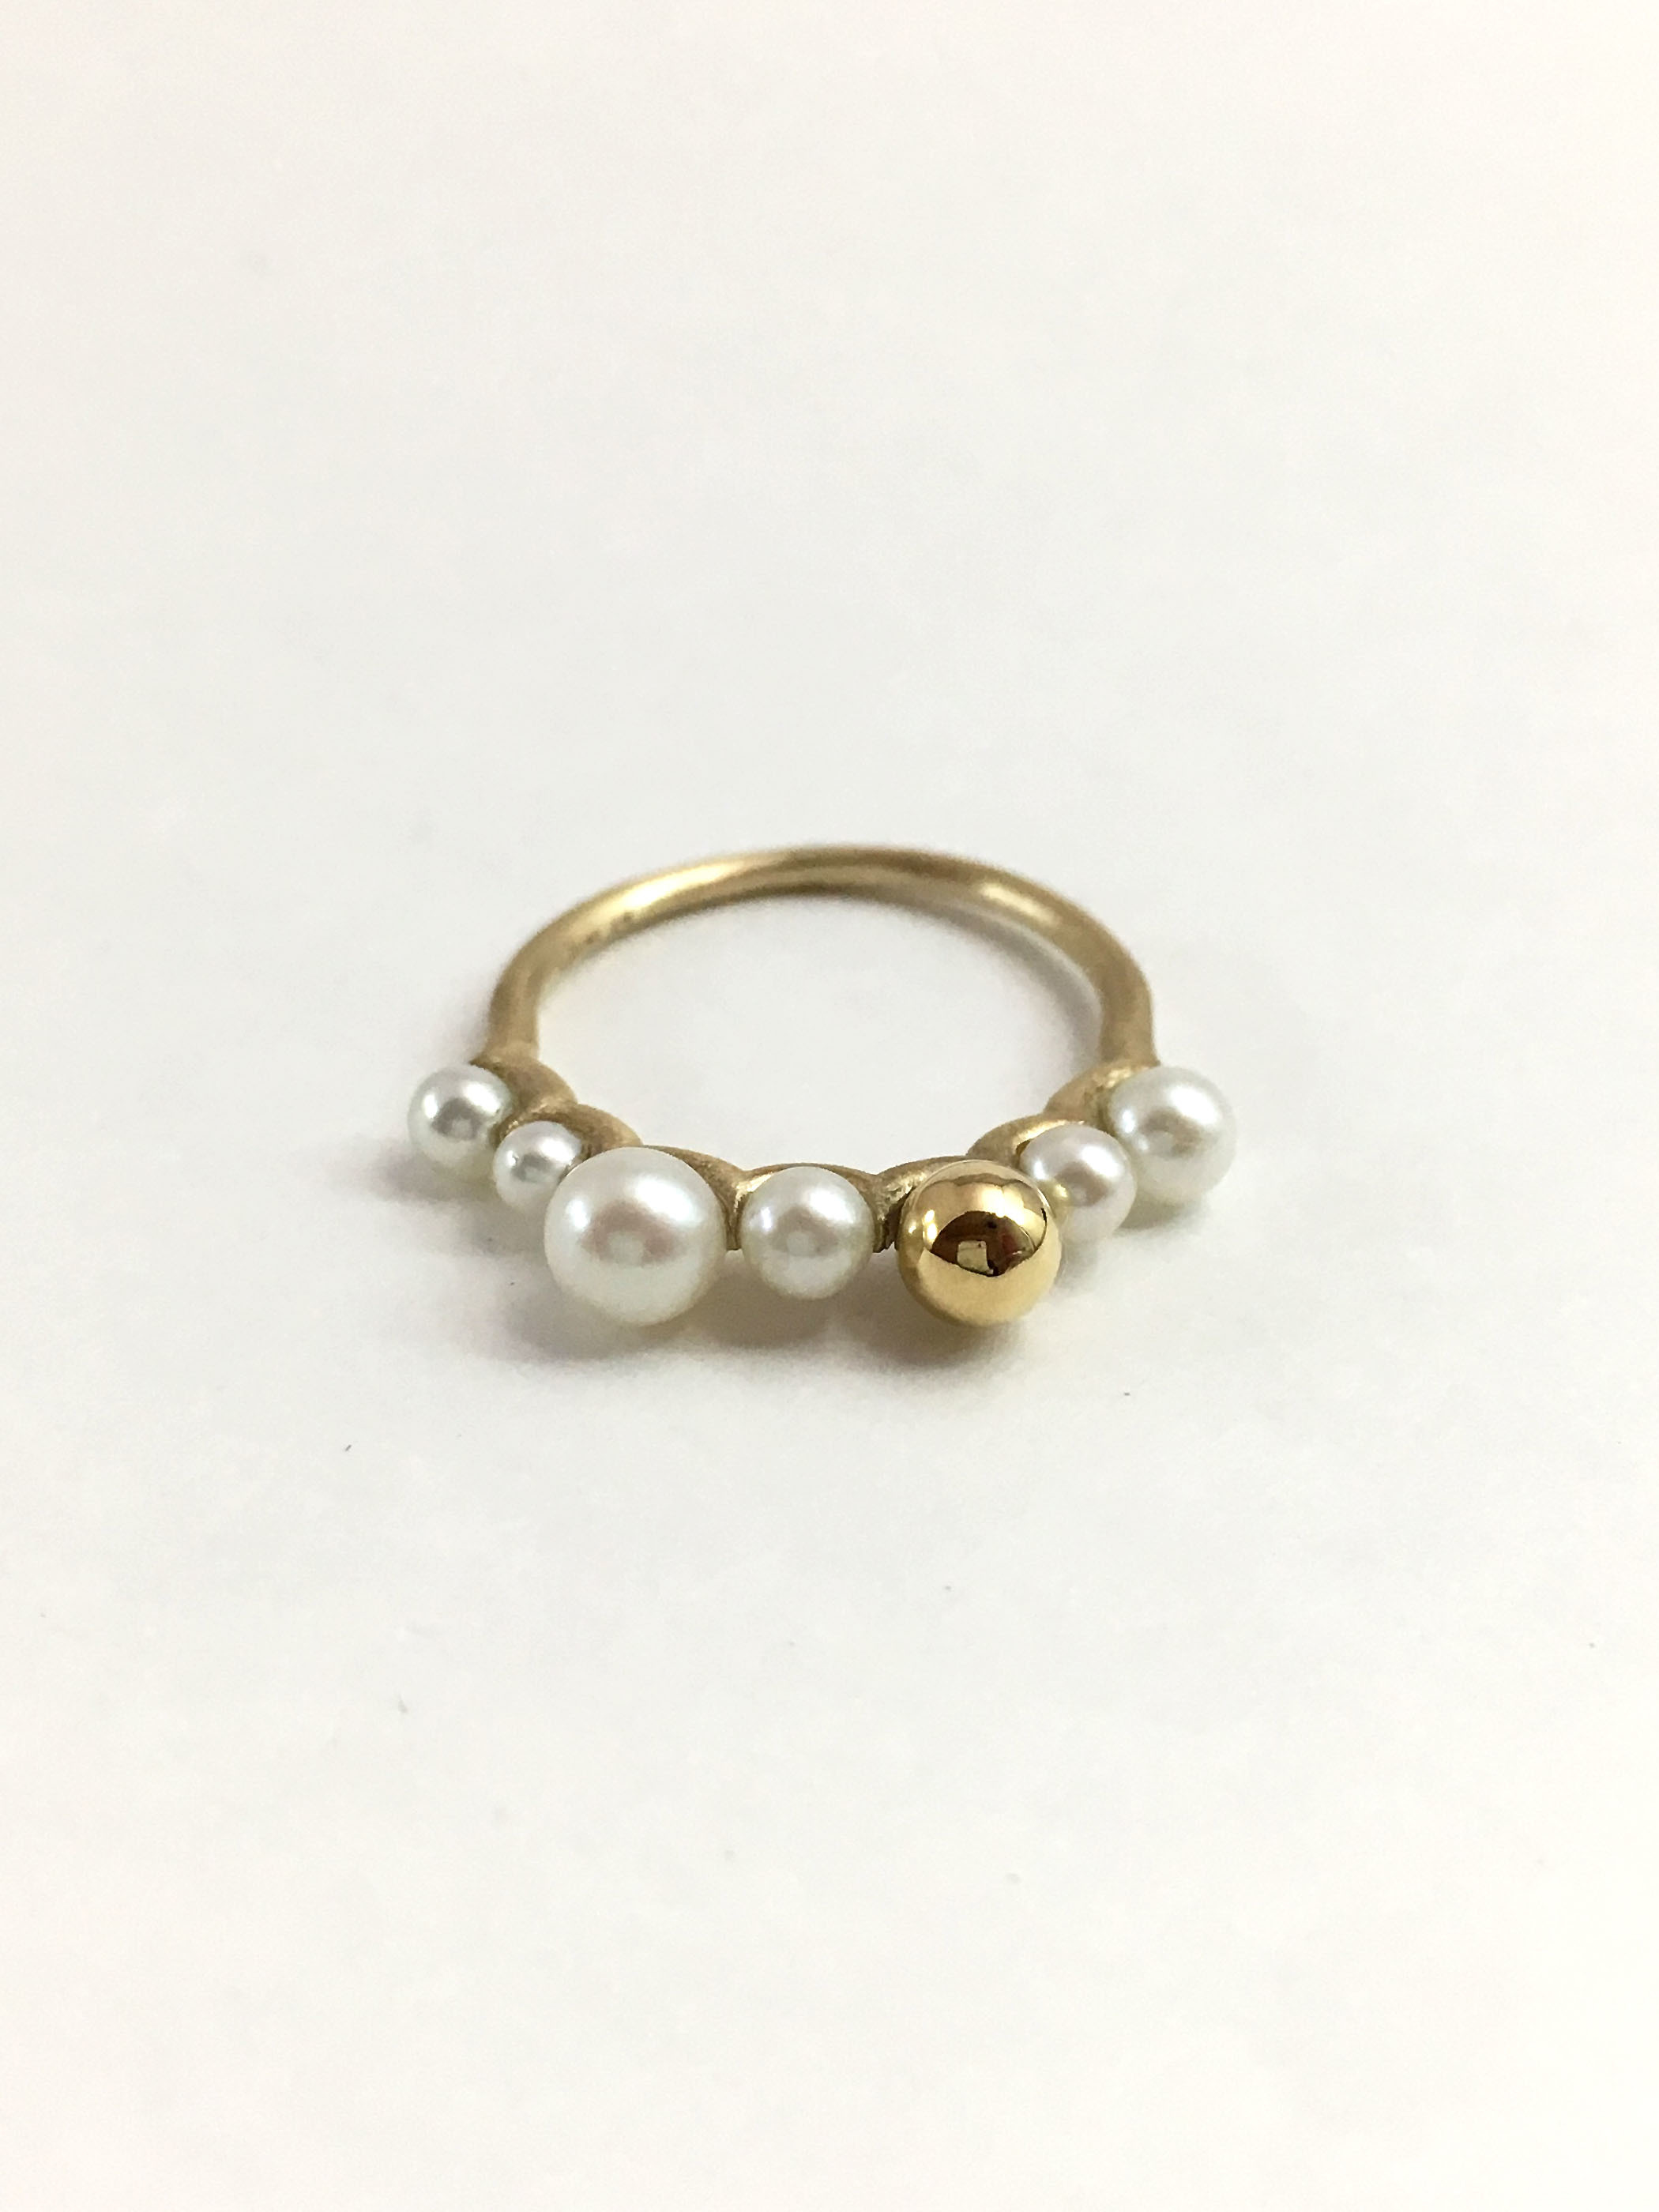 7 BUNNY TAIL RING